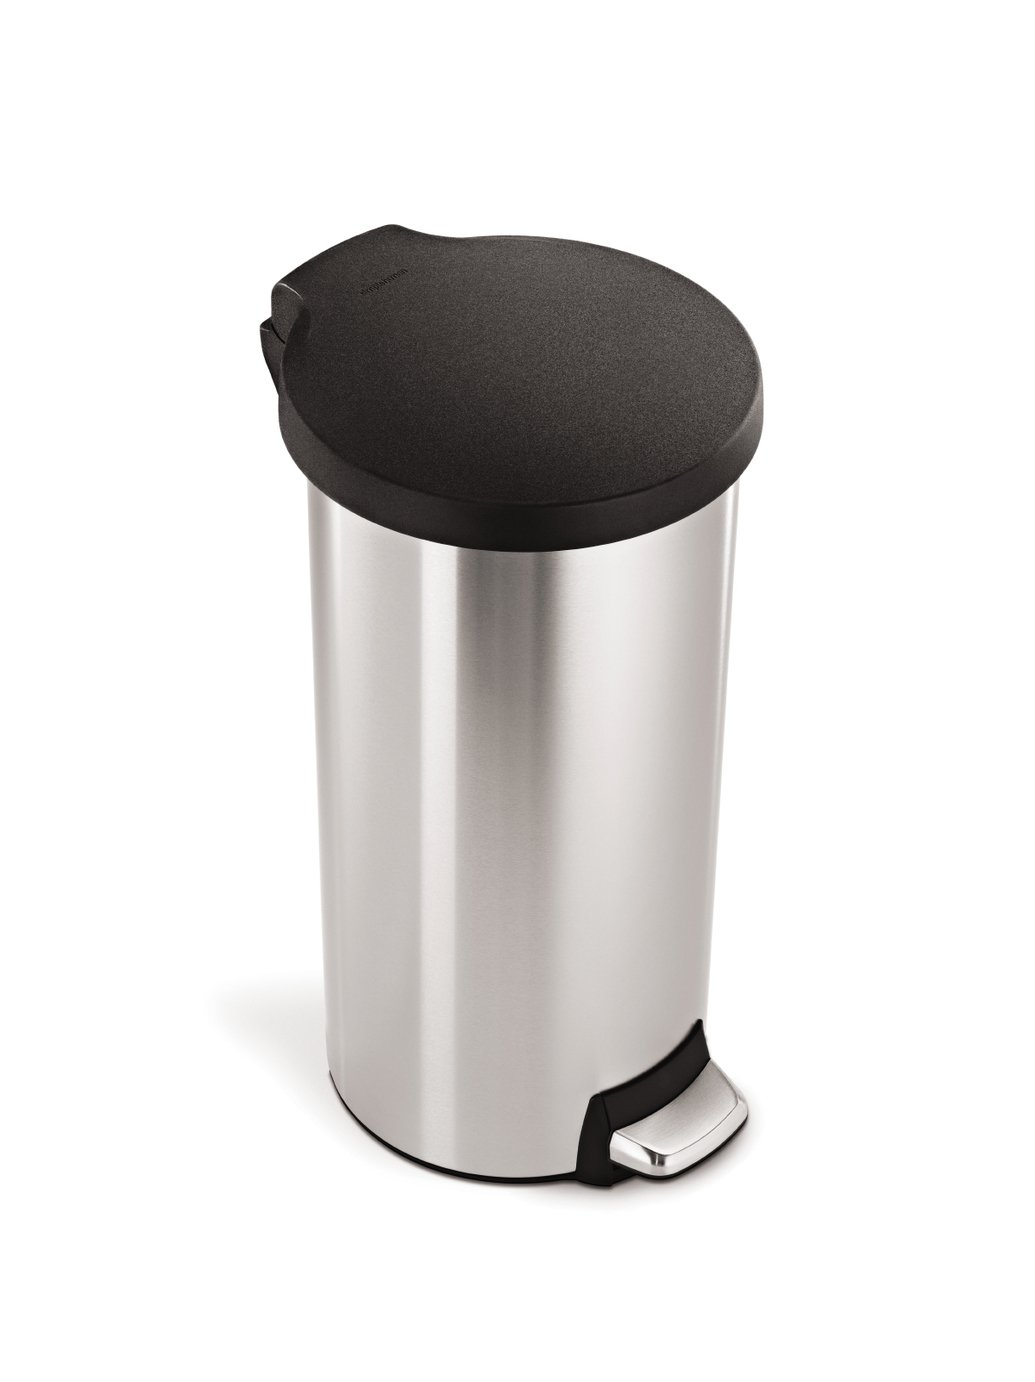 simplehuman 30L Round Pedal Bin - Brushed Stainless Steel.